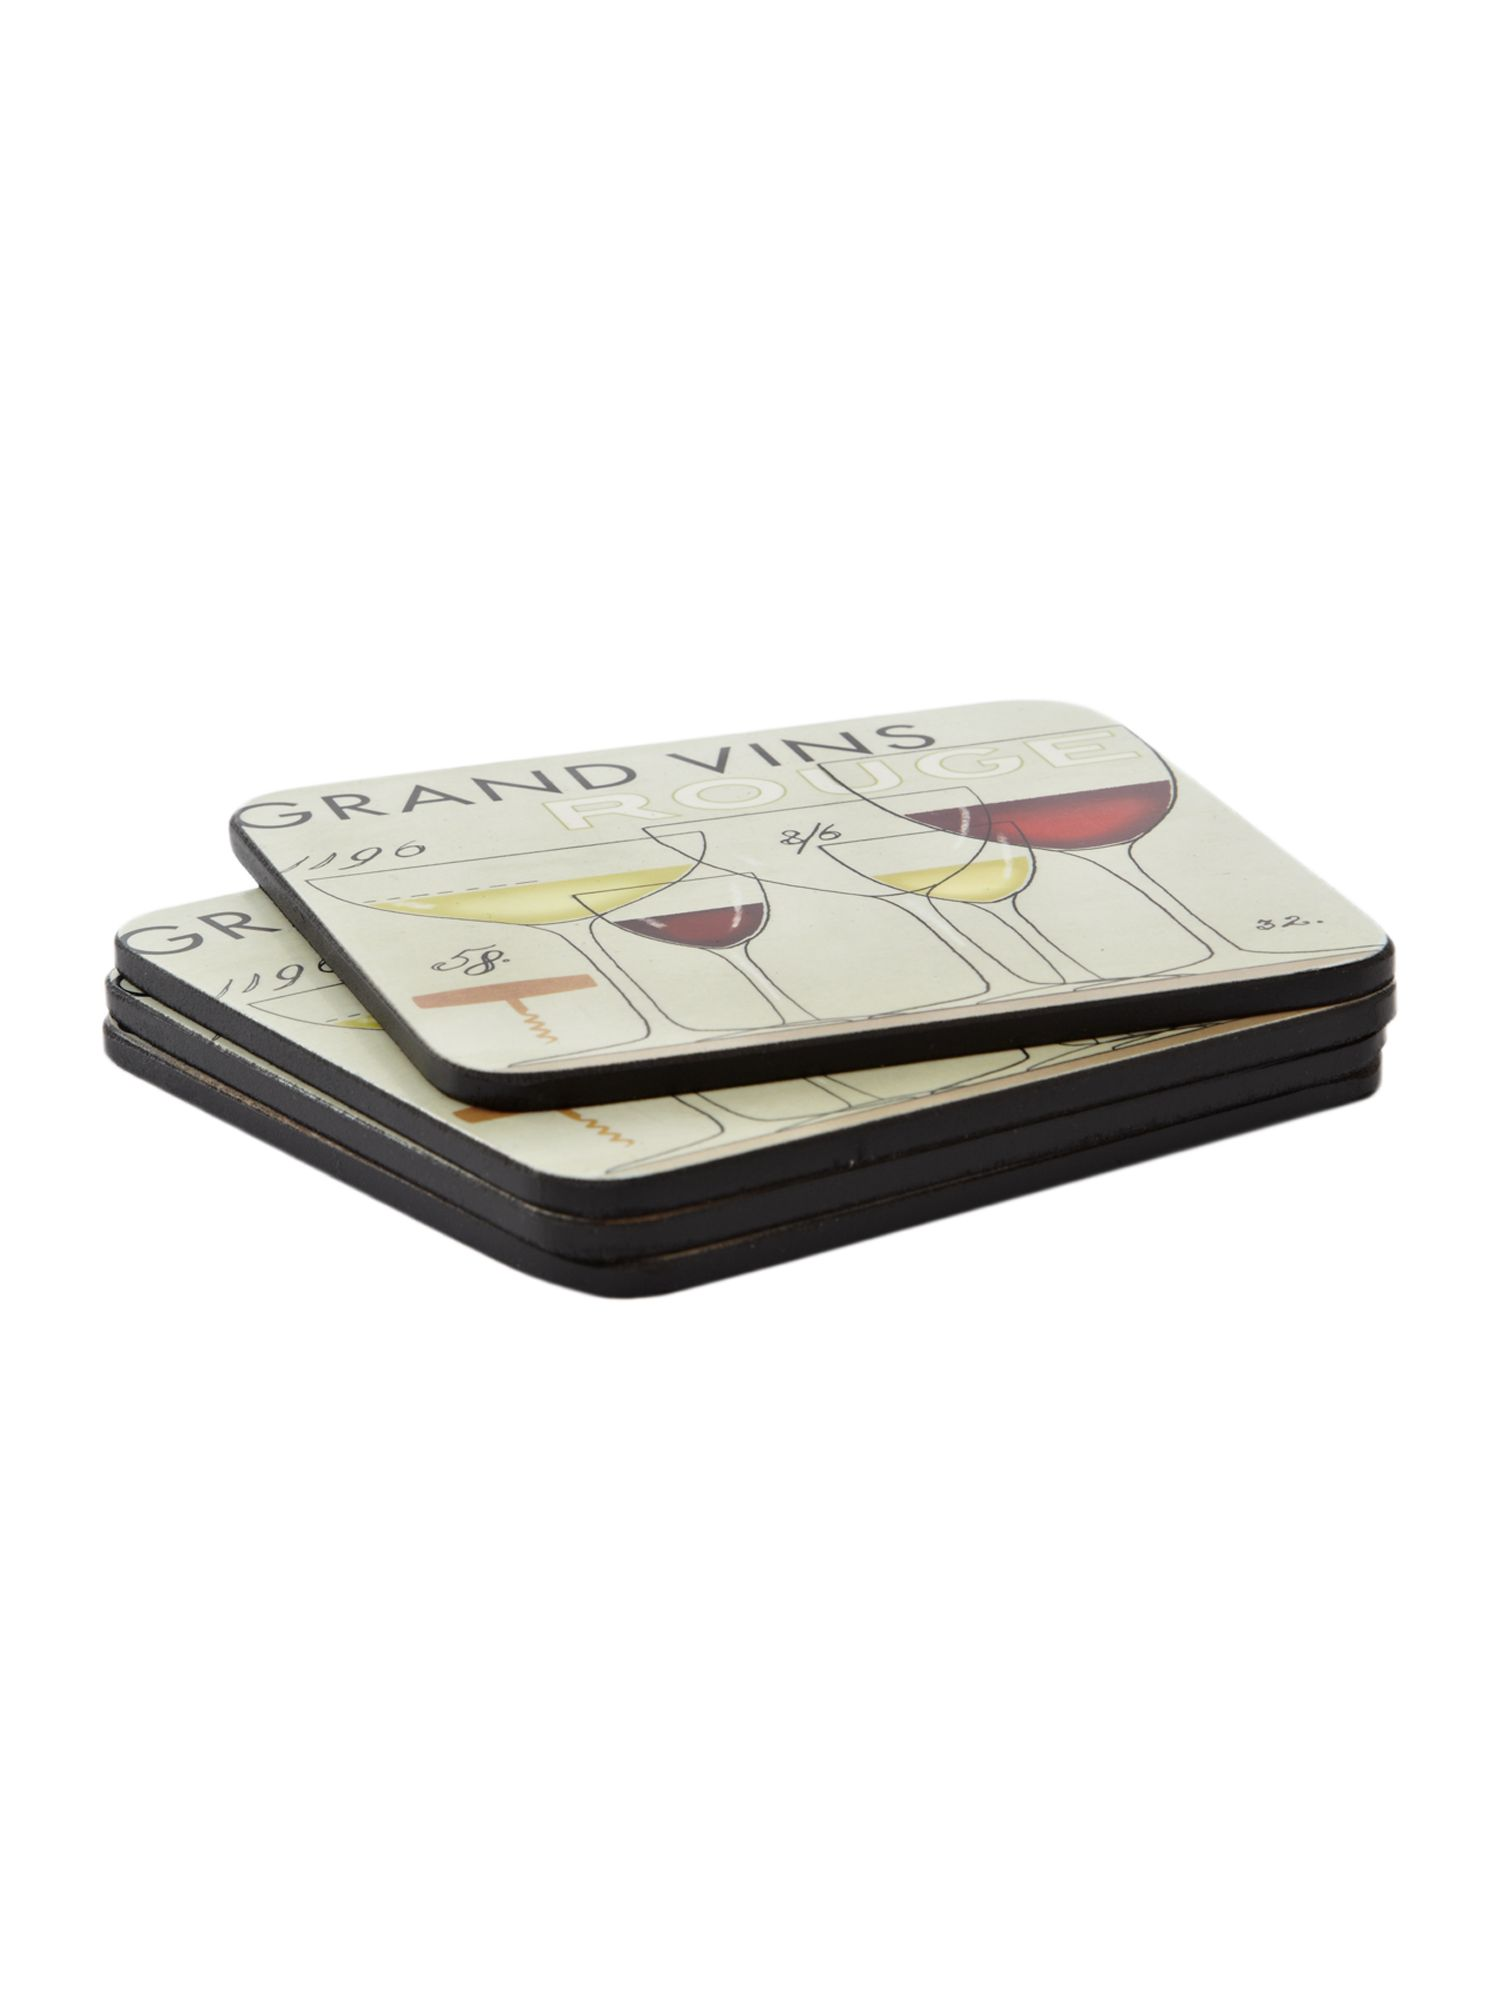 Grand vin placemats set of 4